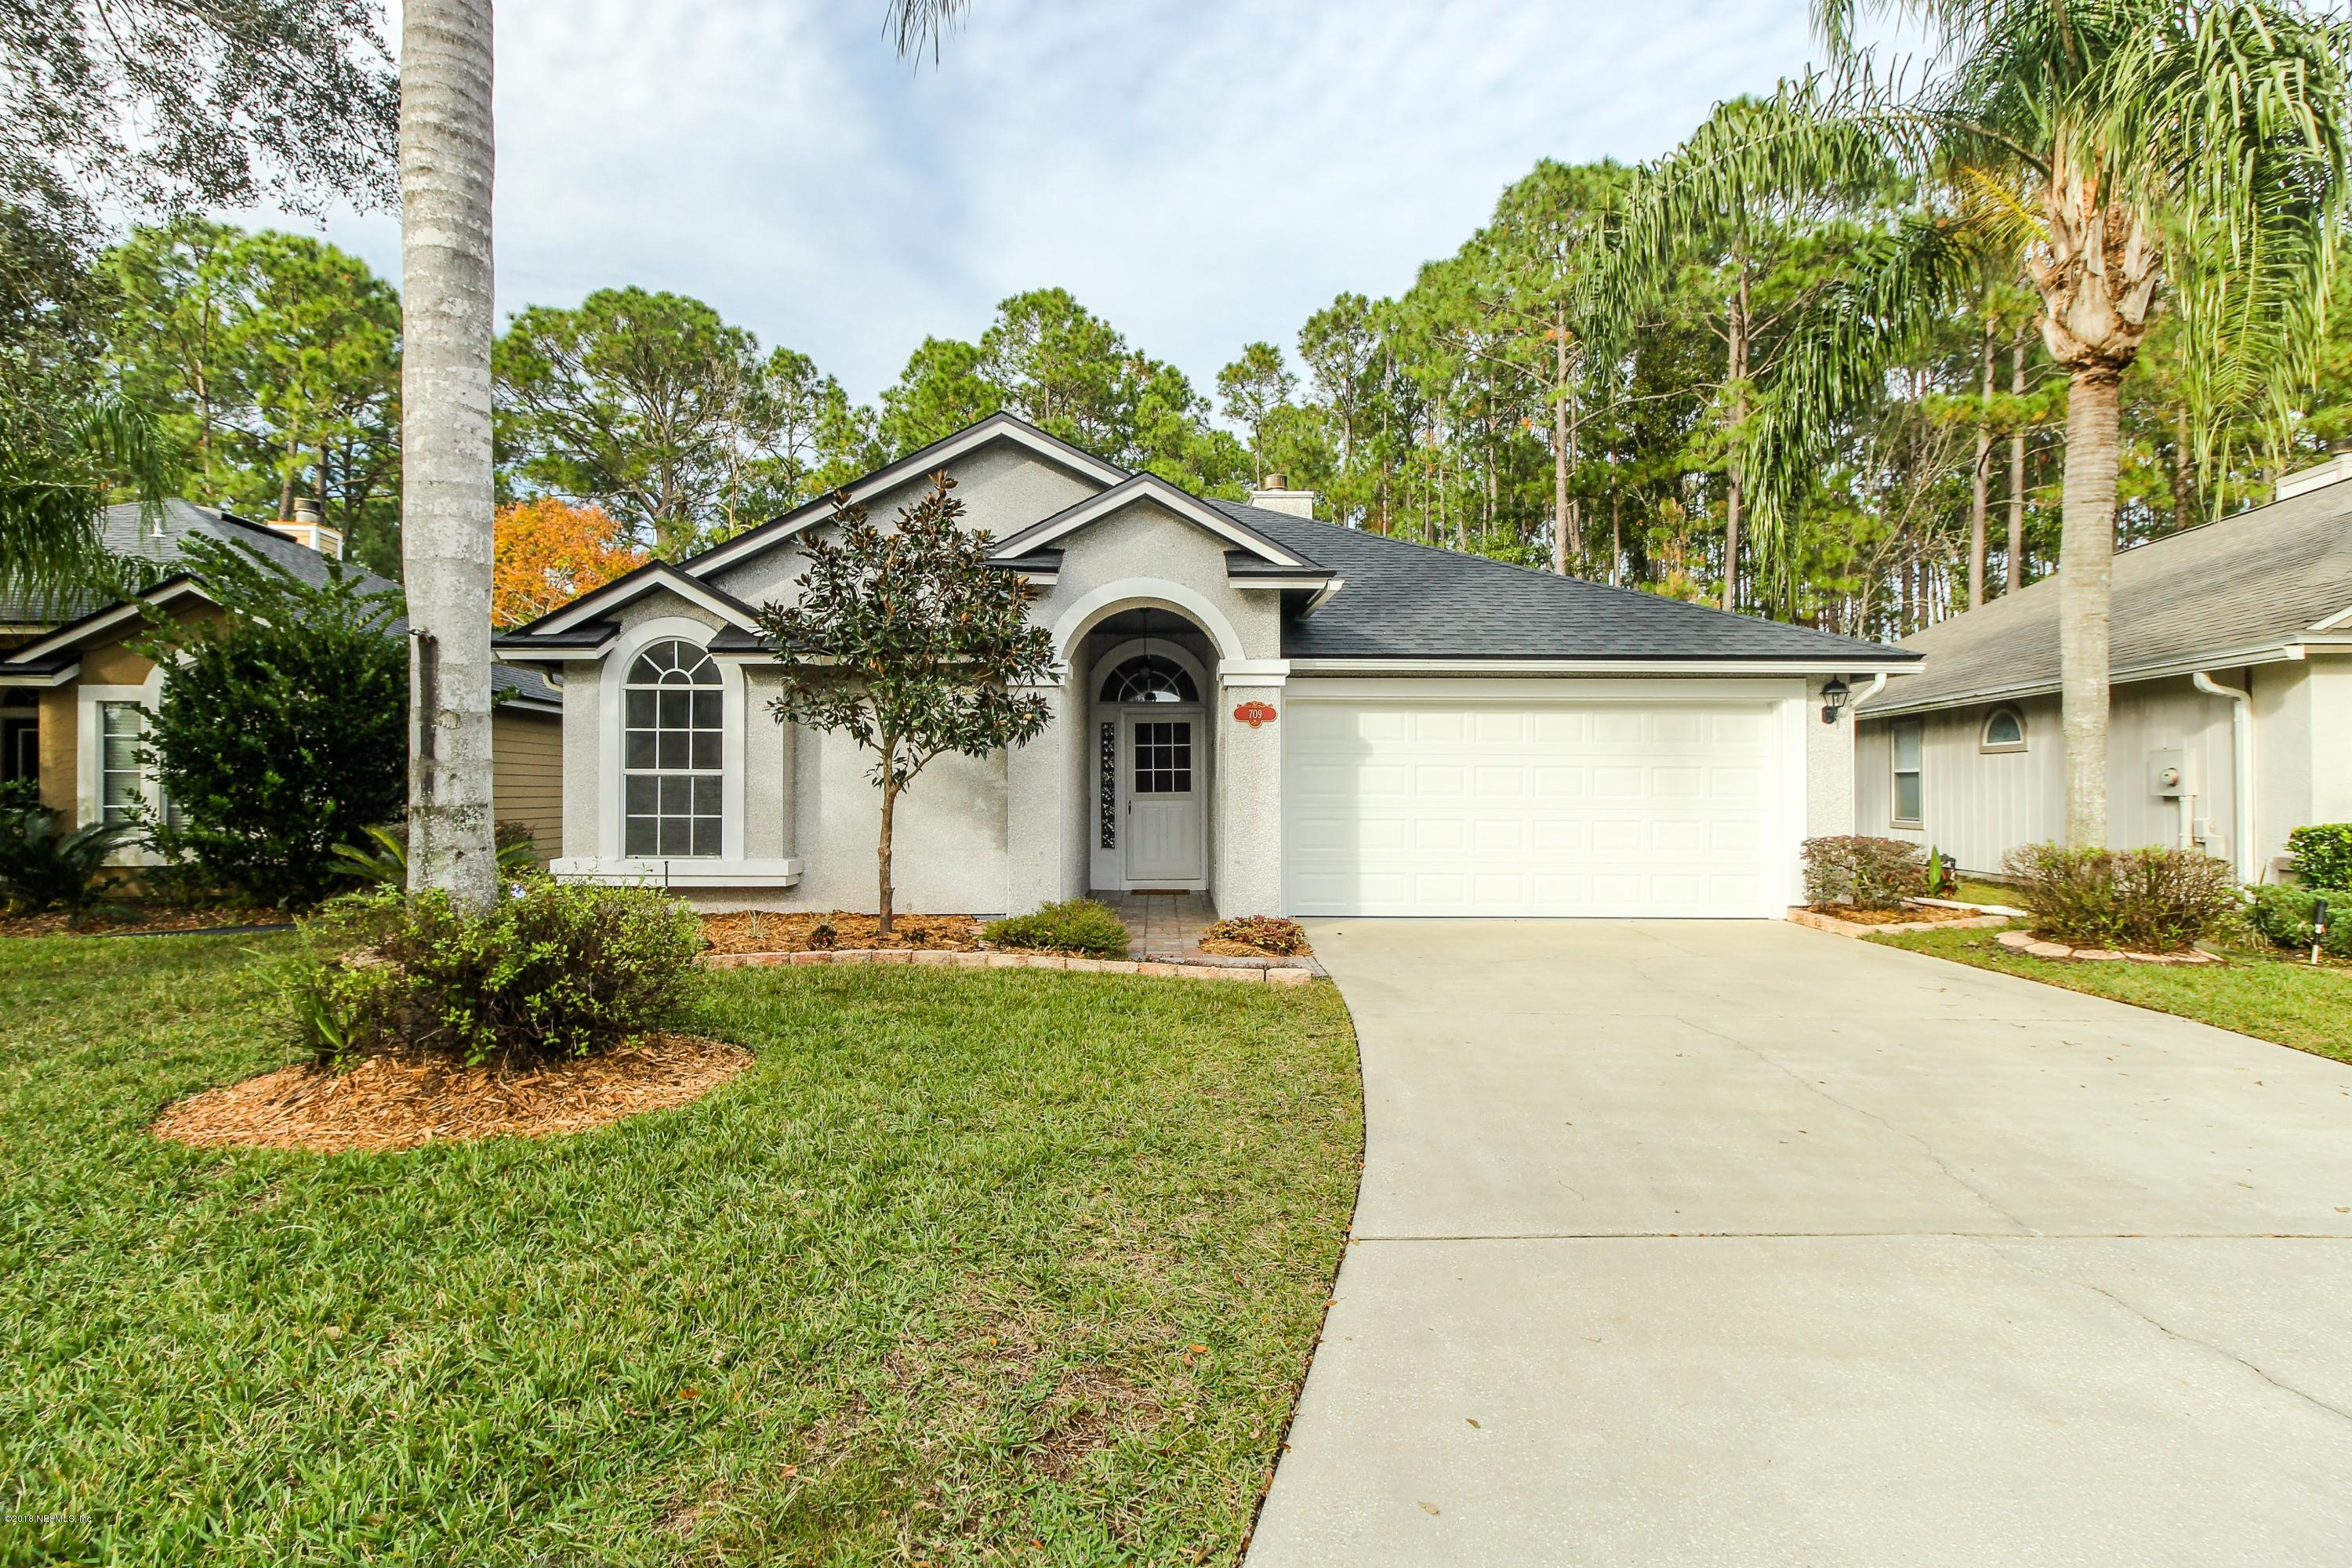 709  LOCKWOOD LN, Julington Creek in ST. JOHNS County, FL 32259 Home for Sale